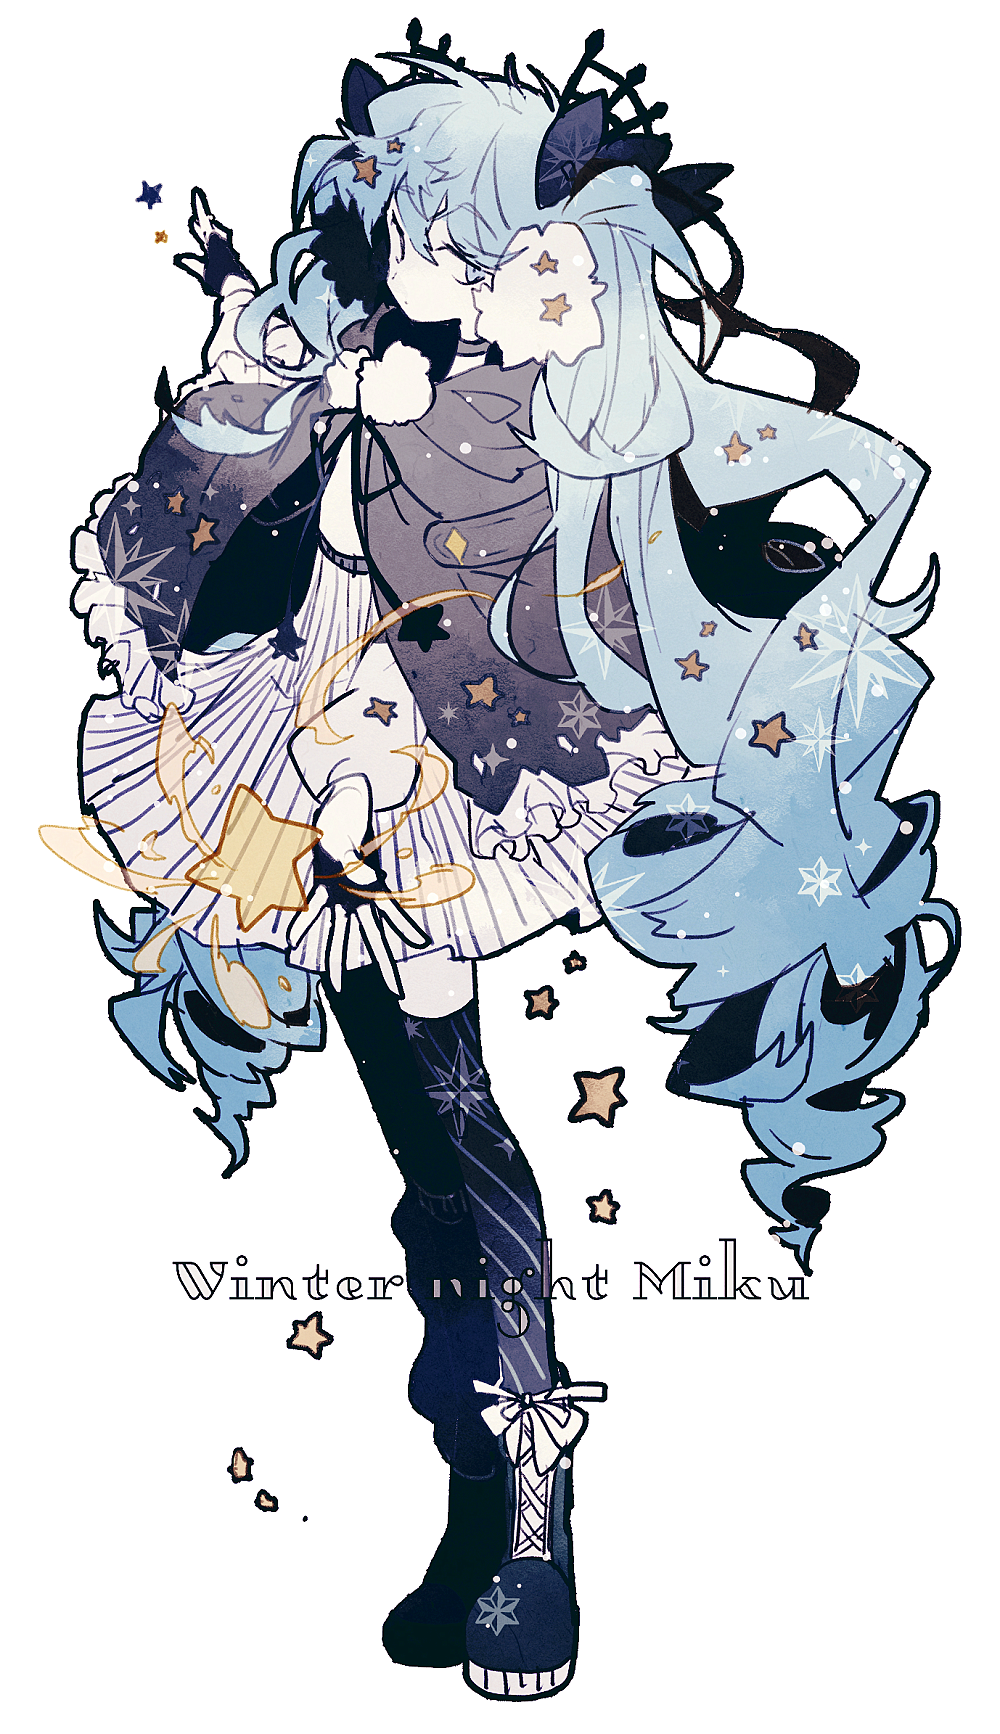 Pin By Blue Whale On Anime 3 キャラクターアート 初音ミク 描き方